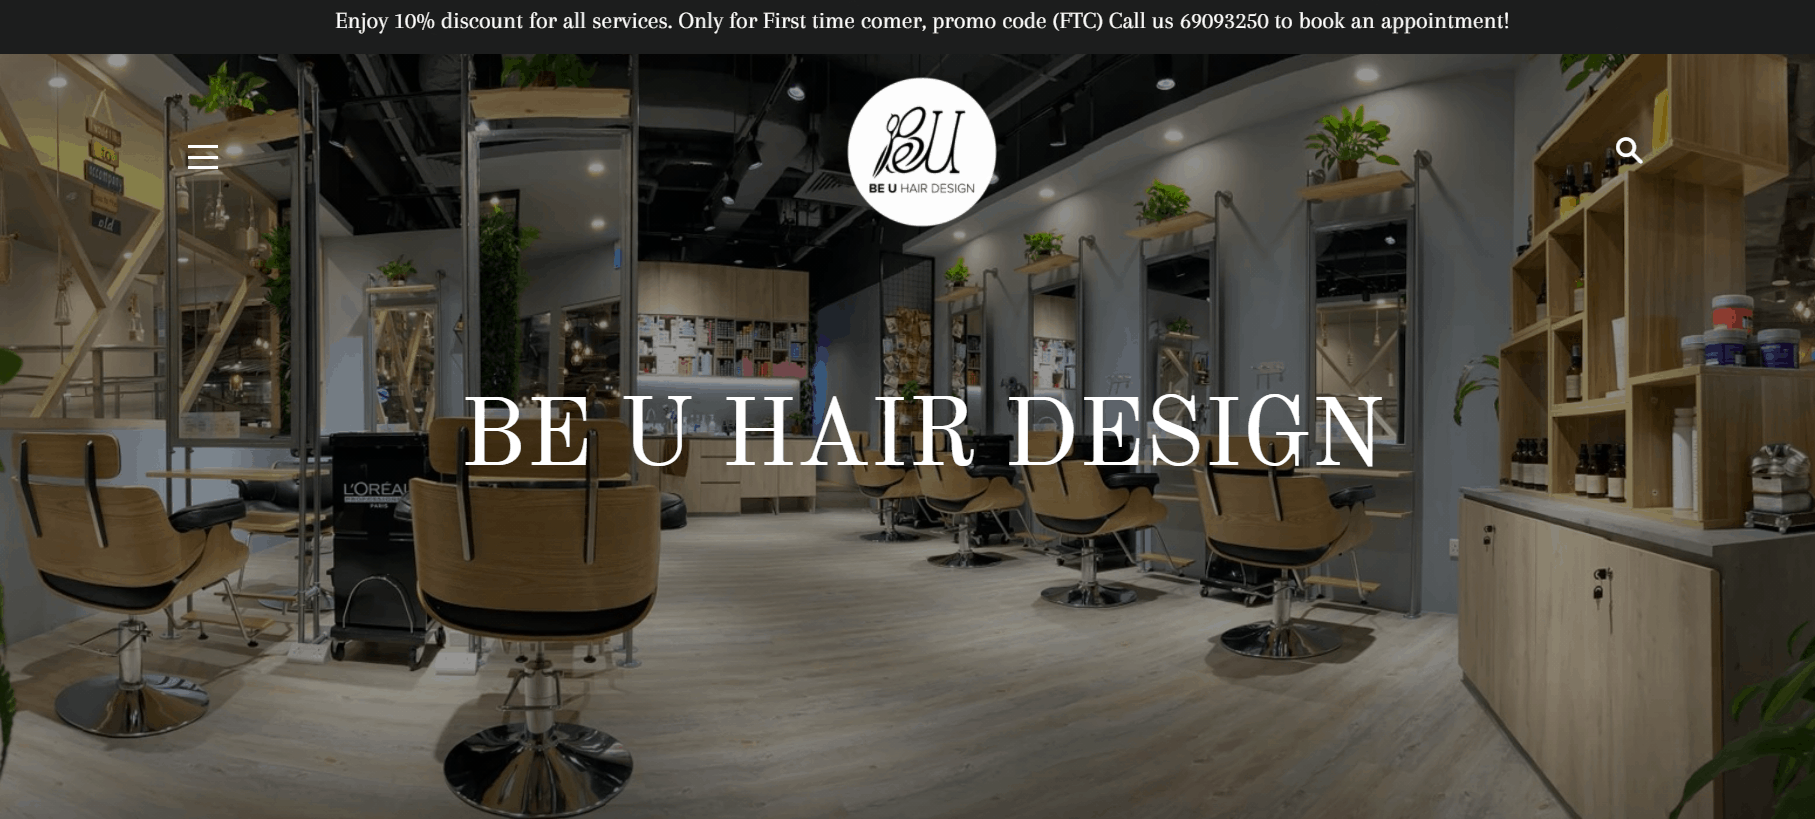 BE U Hair Design is the Top 10 Hair Salon to get Haircut for $50 and below